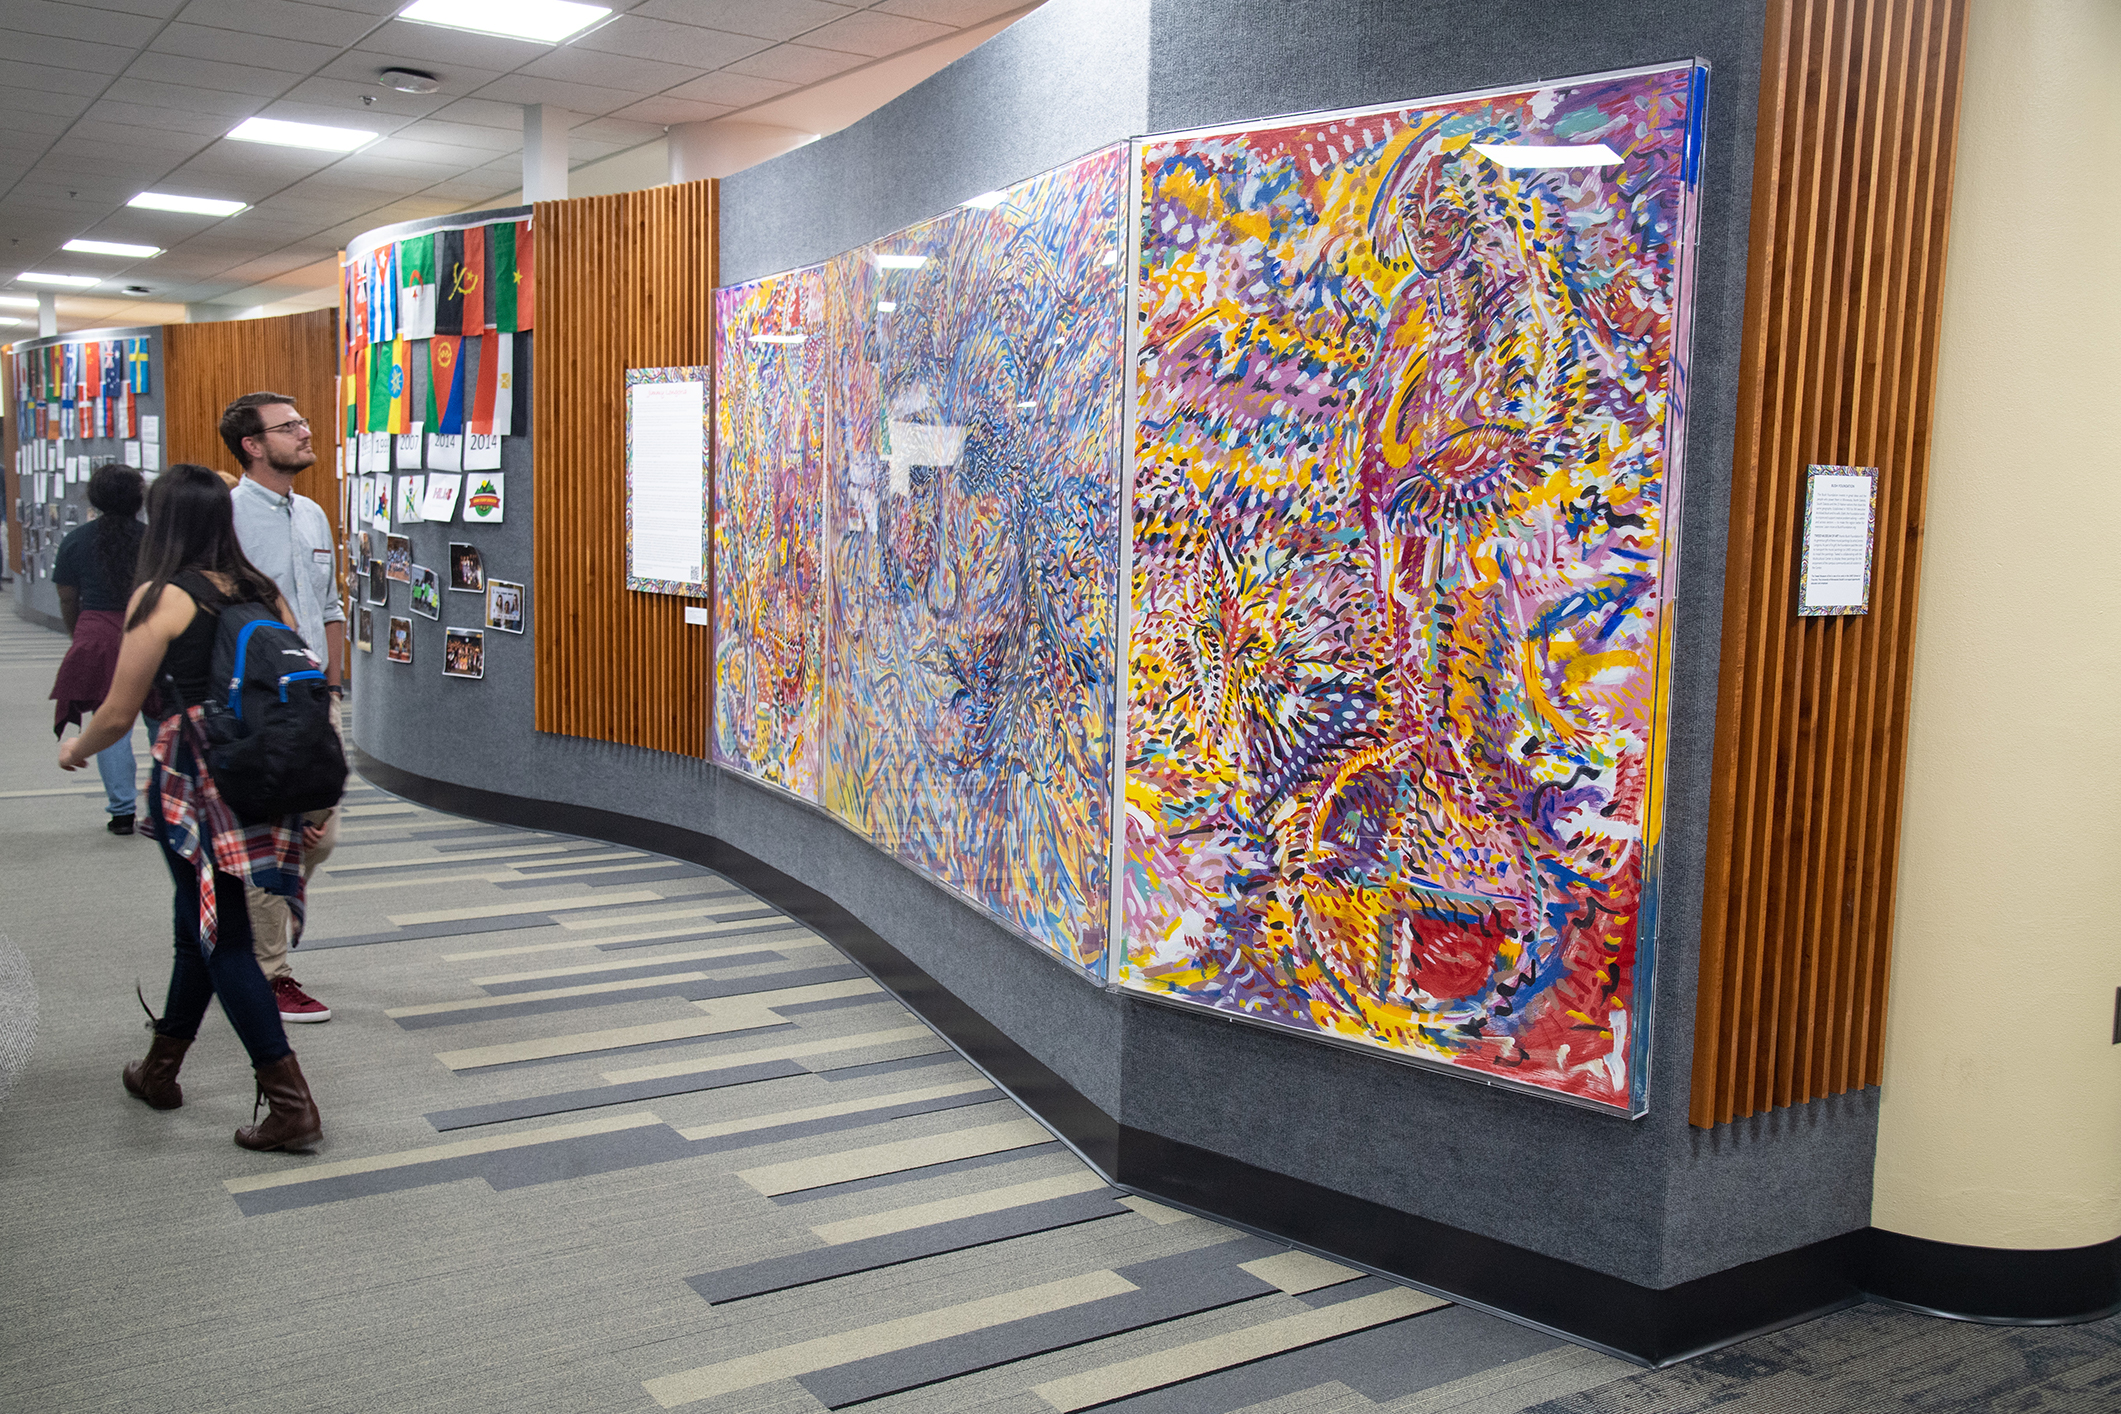 Students walking through the Multicultural Center past colorful painting